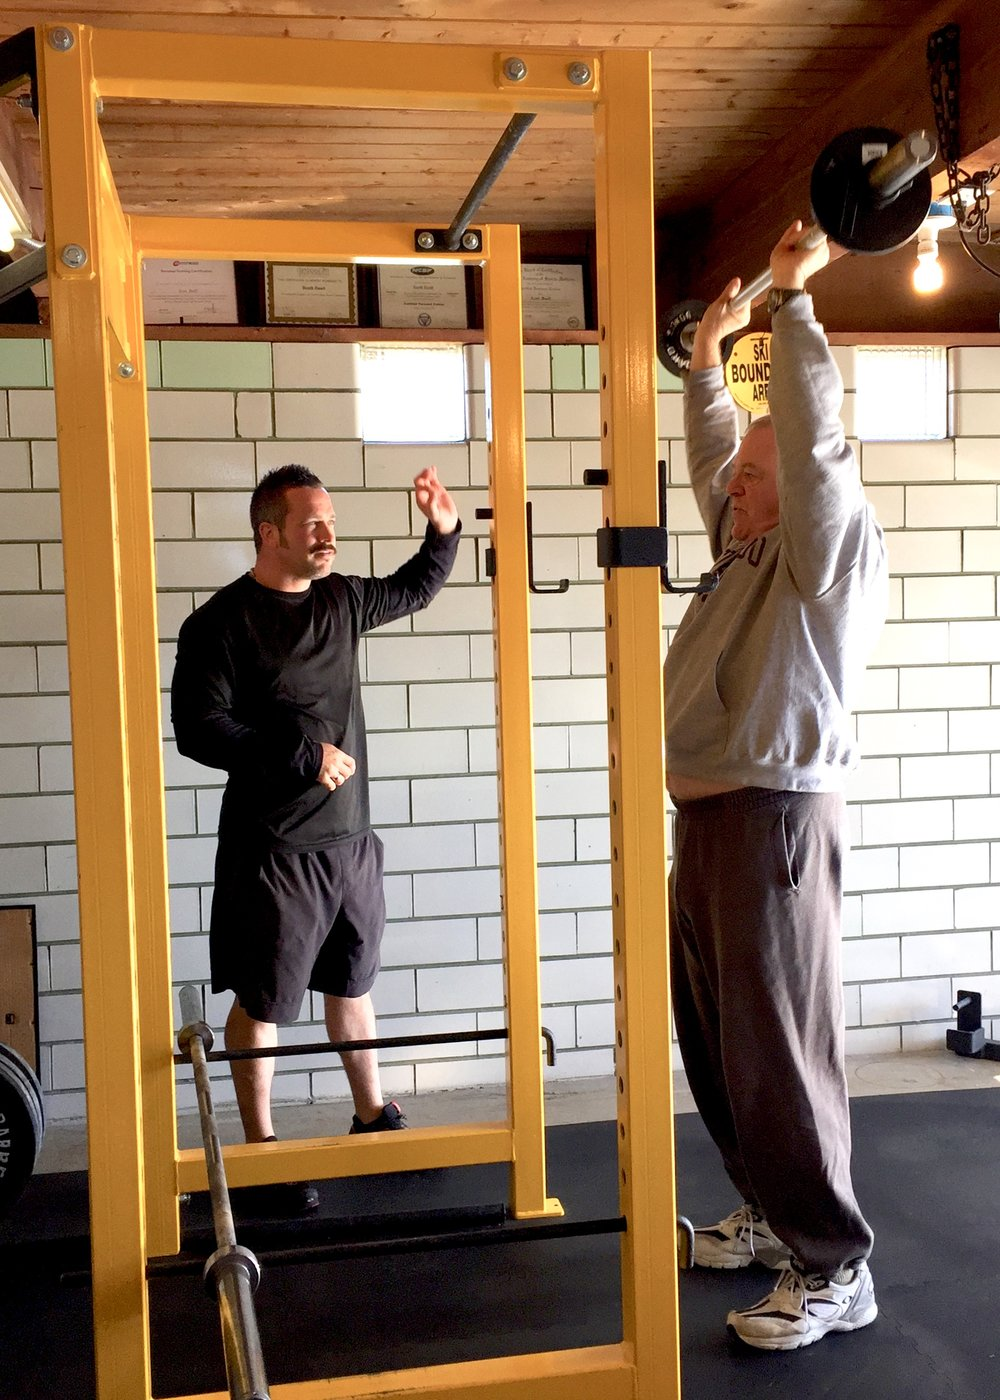 Ed (80 years young) has committed to his strength & health, training with Scott for over nine years.